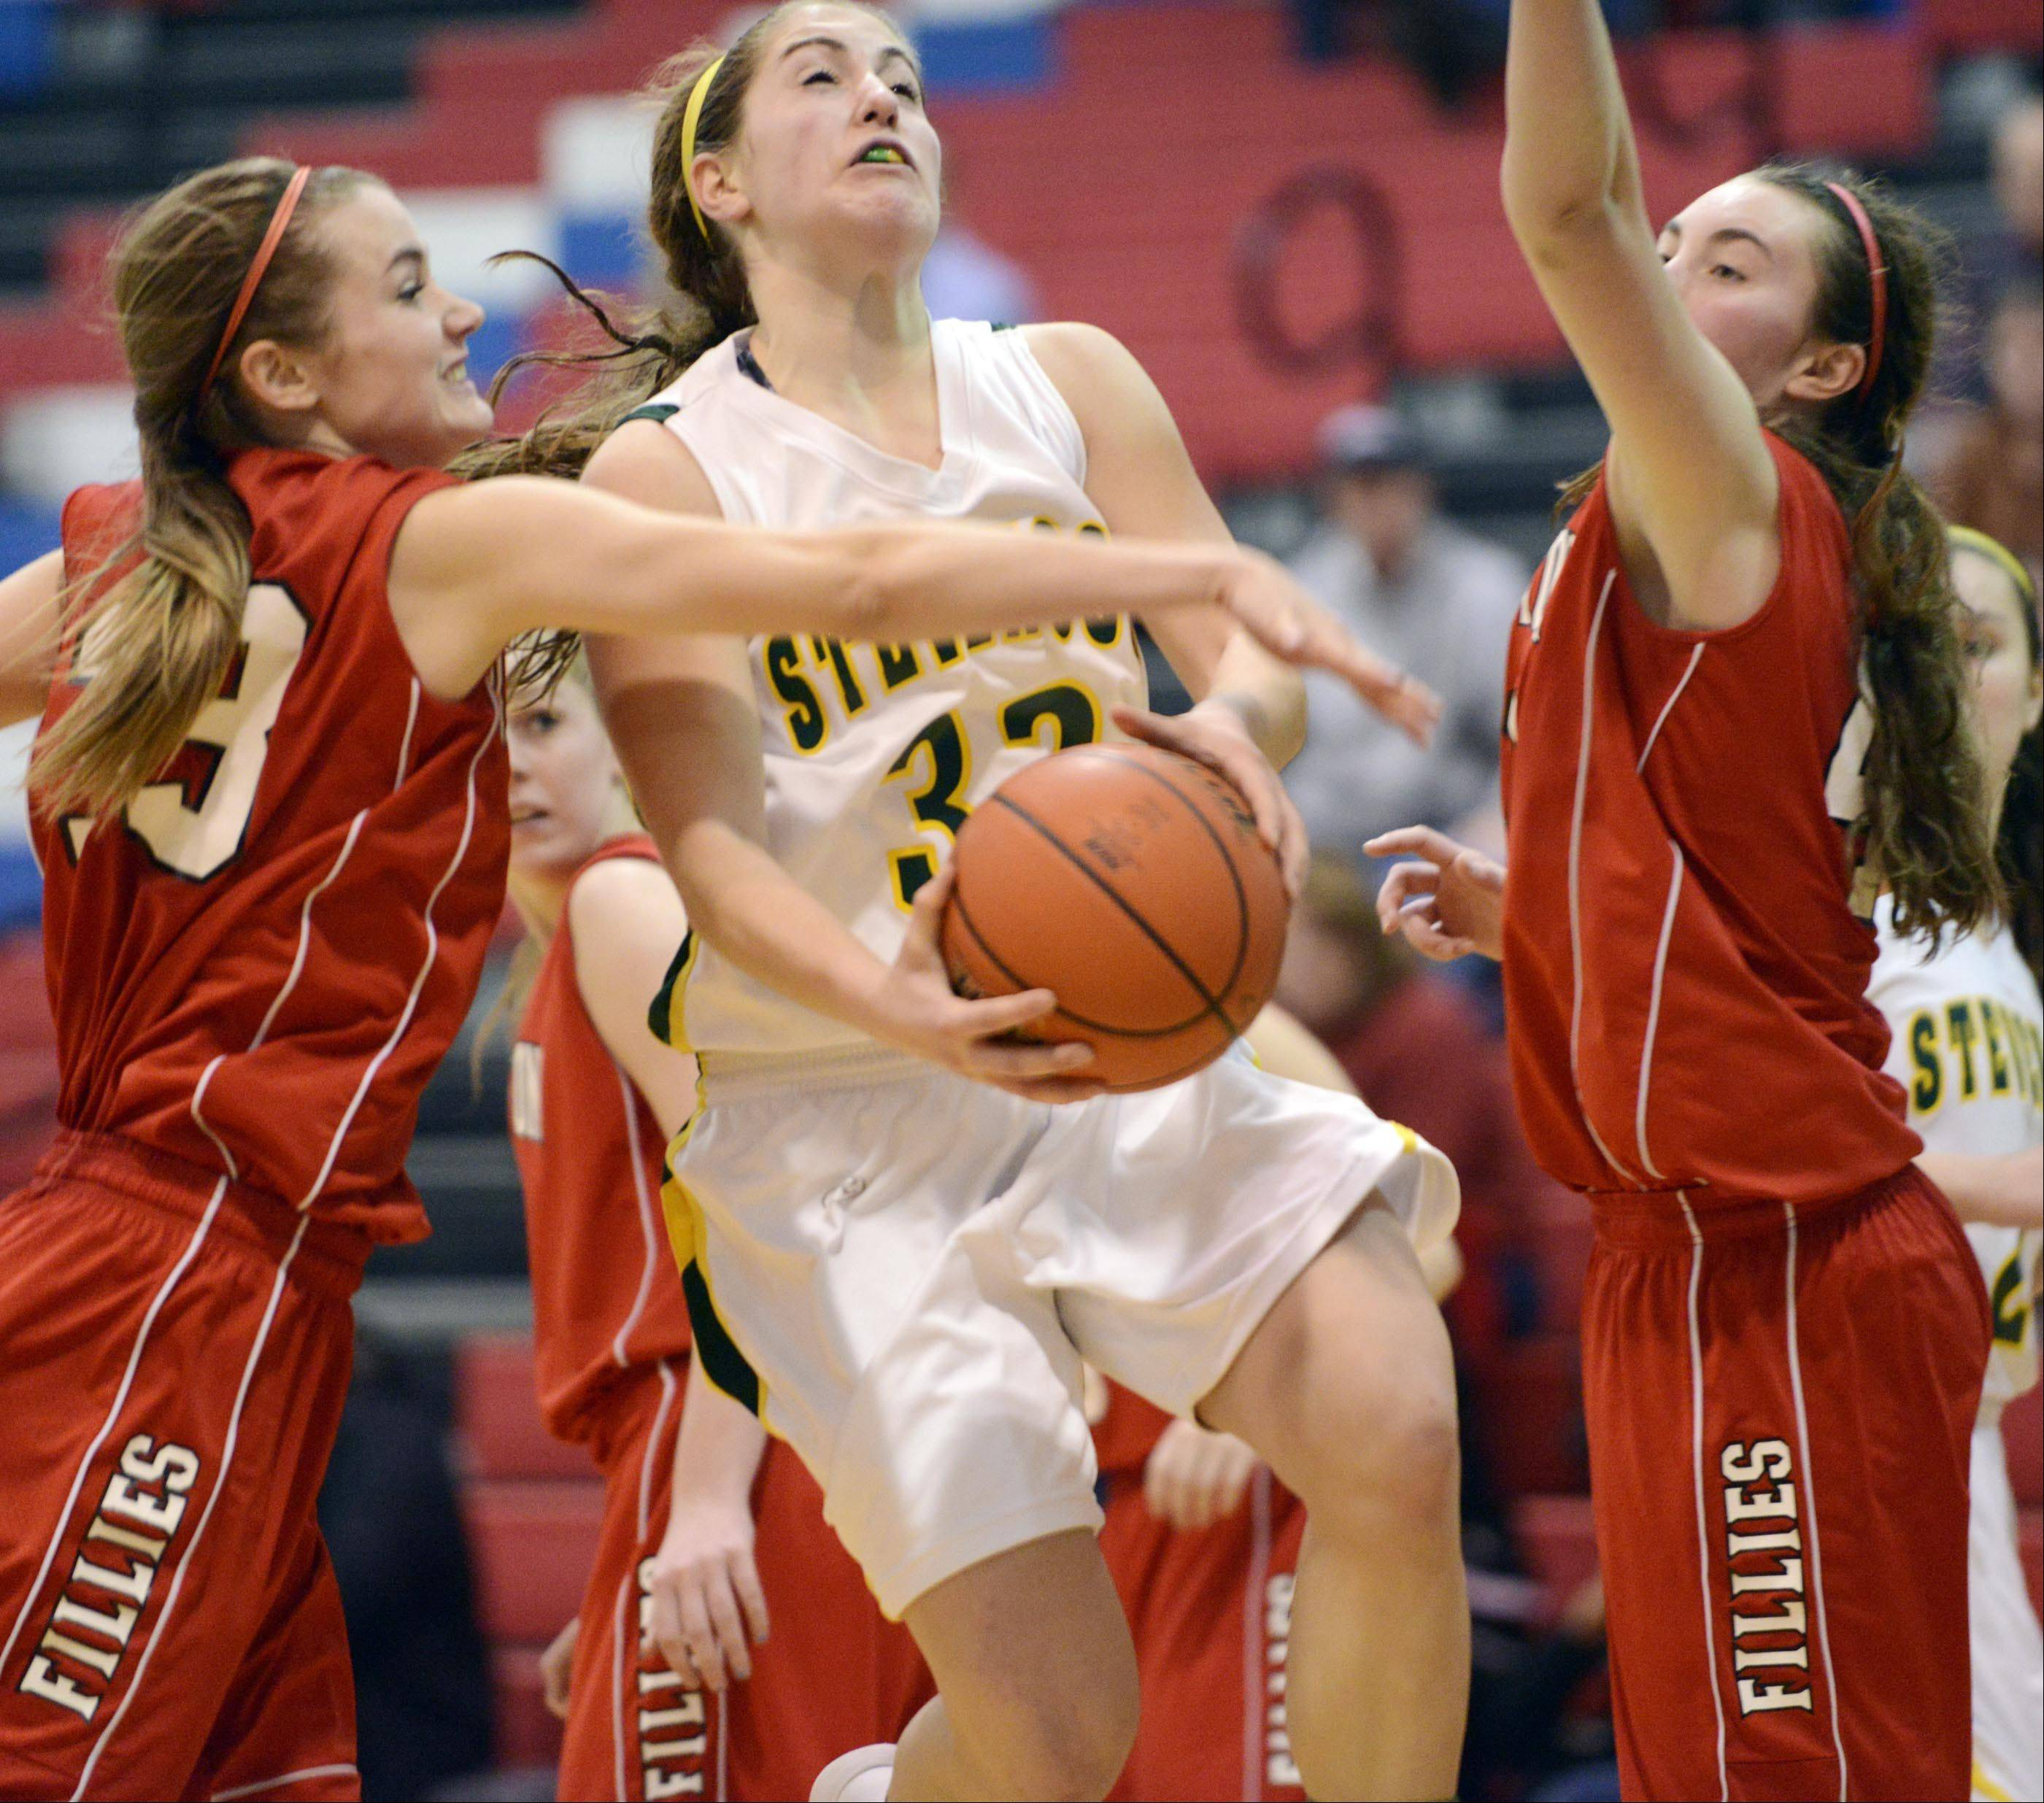 Barrington's Angie Kirchoff tries to block a shot by Stevenson's Sophia Way.